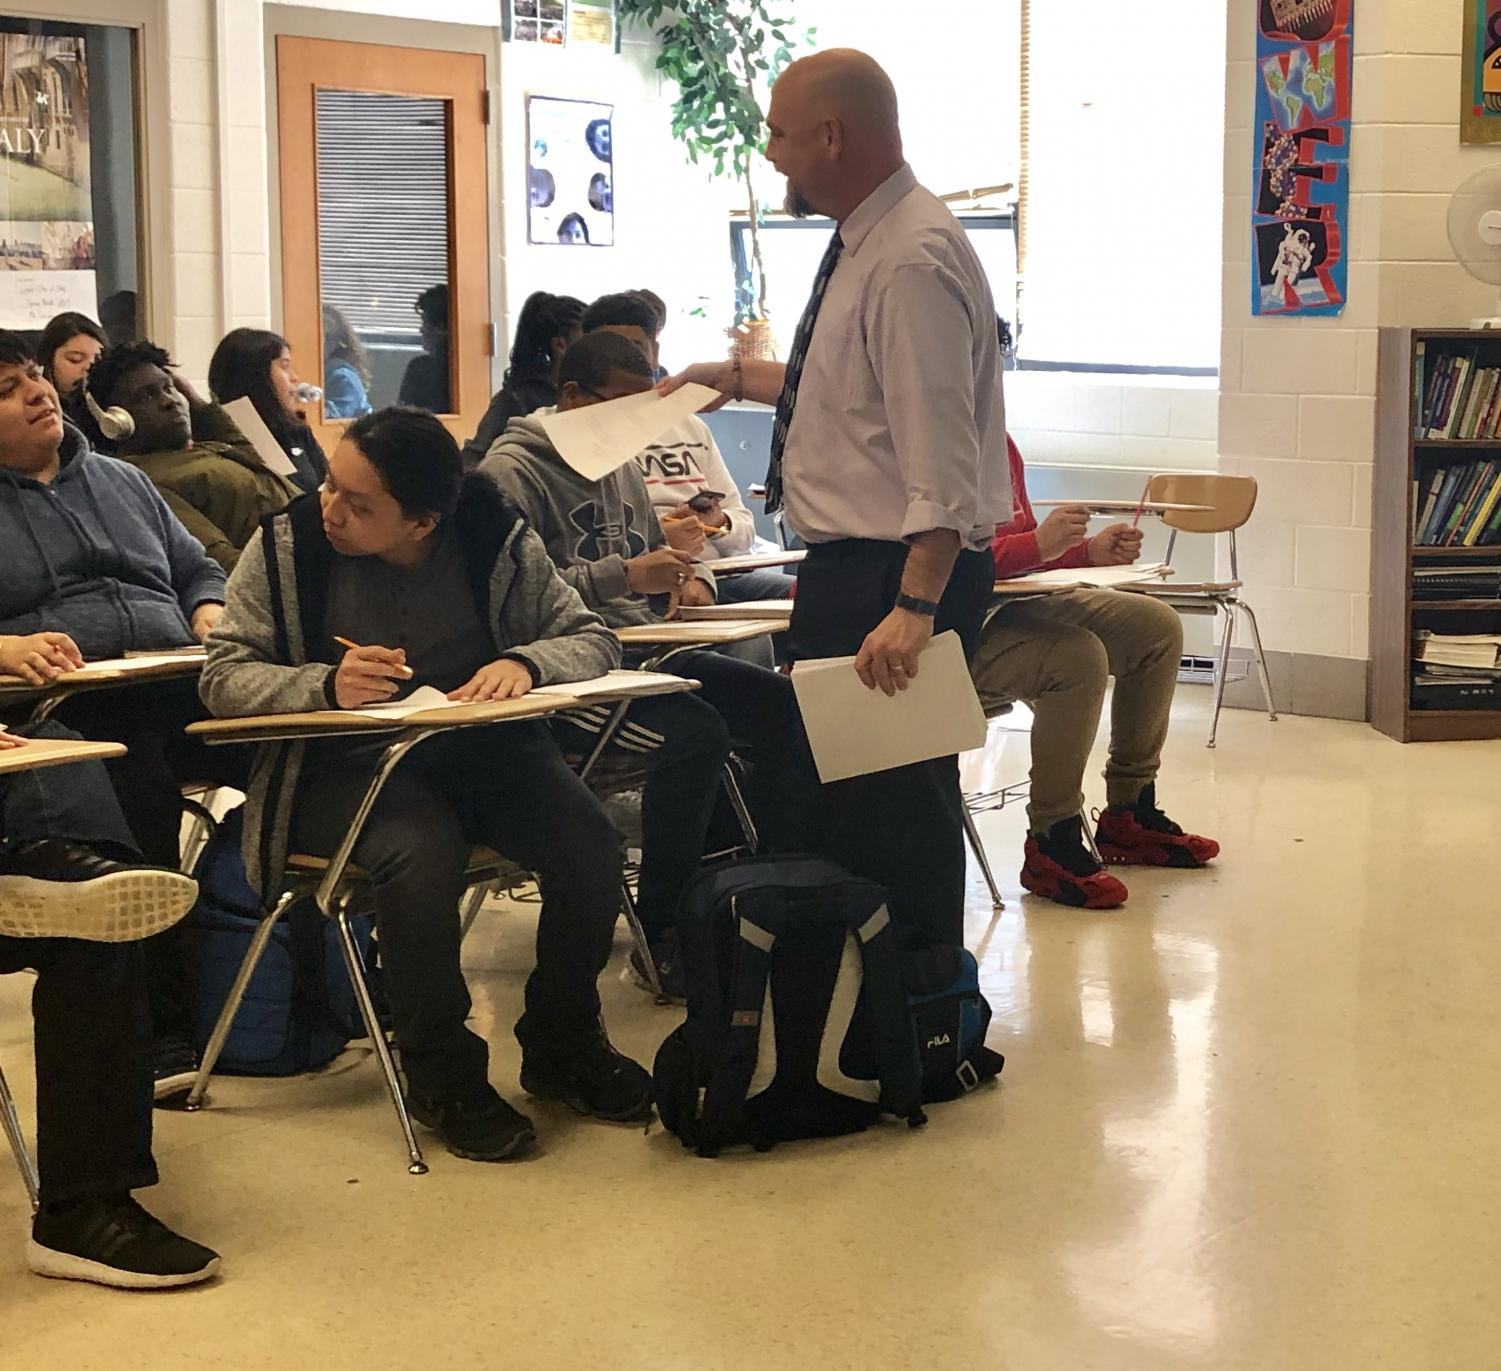 Social studies teacher Will Funk doesn't have problems controlling his classes--he learned how to manage behavior while working at a juvenile correctional facility